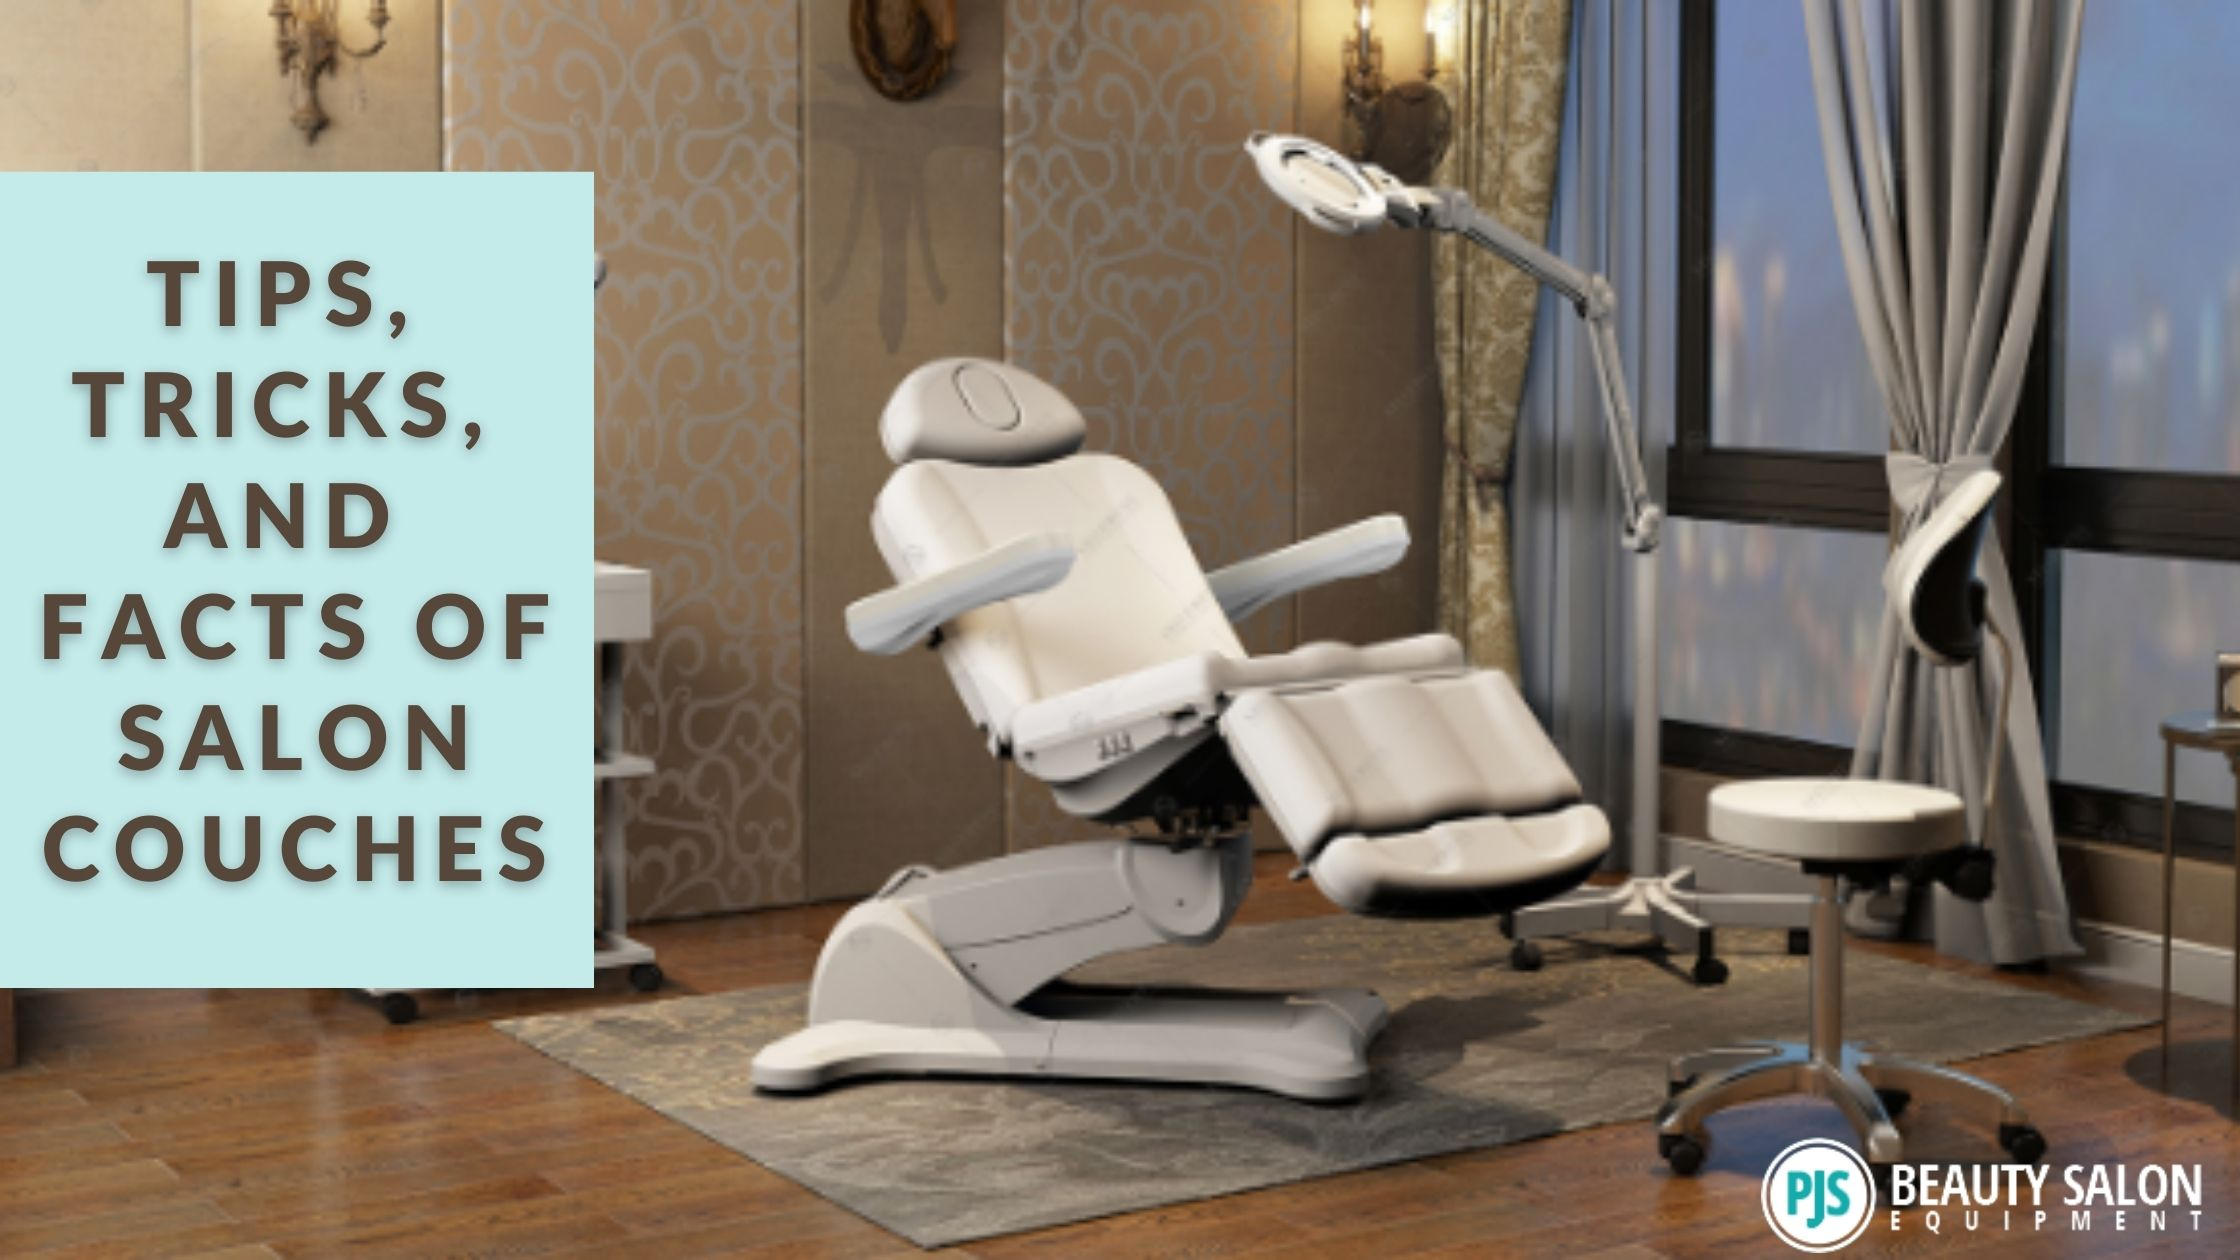 Tips, Tricks, and Facts of Salon Couches